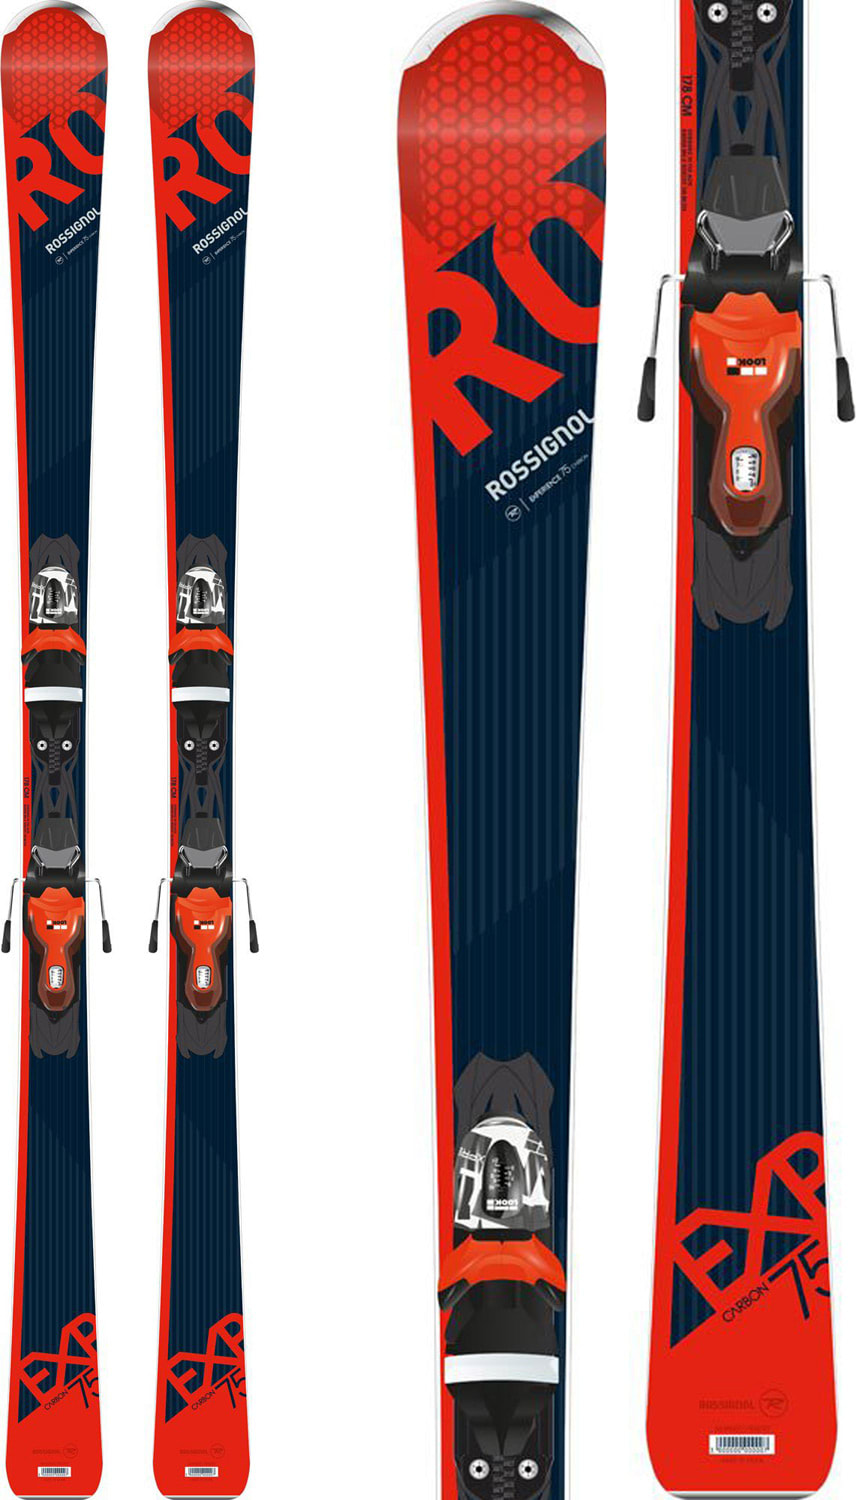 Water Skis For Sale >> Rossignol Experience 75 Carbon Skis w/ XPress 10 Bindings